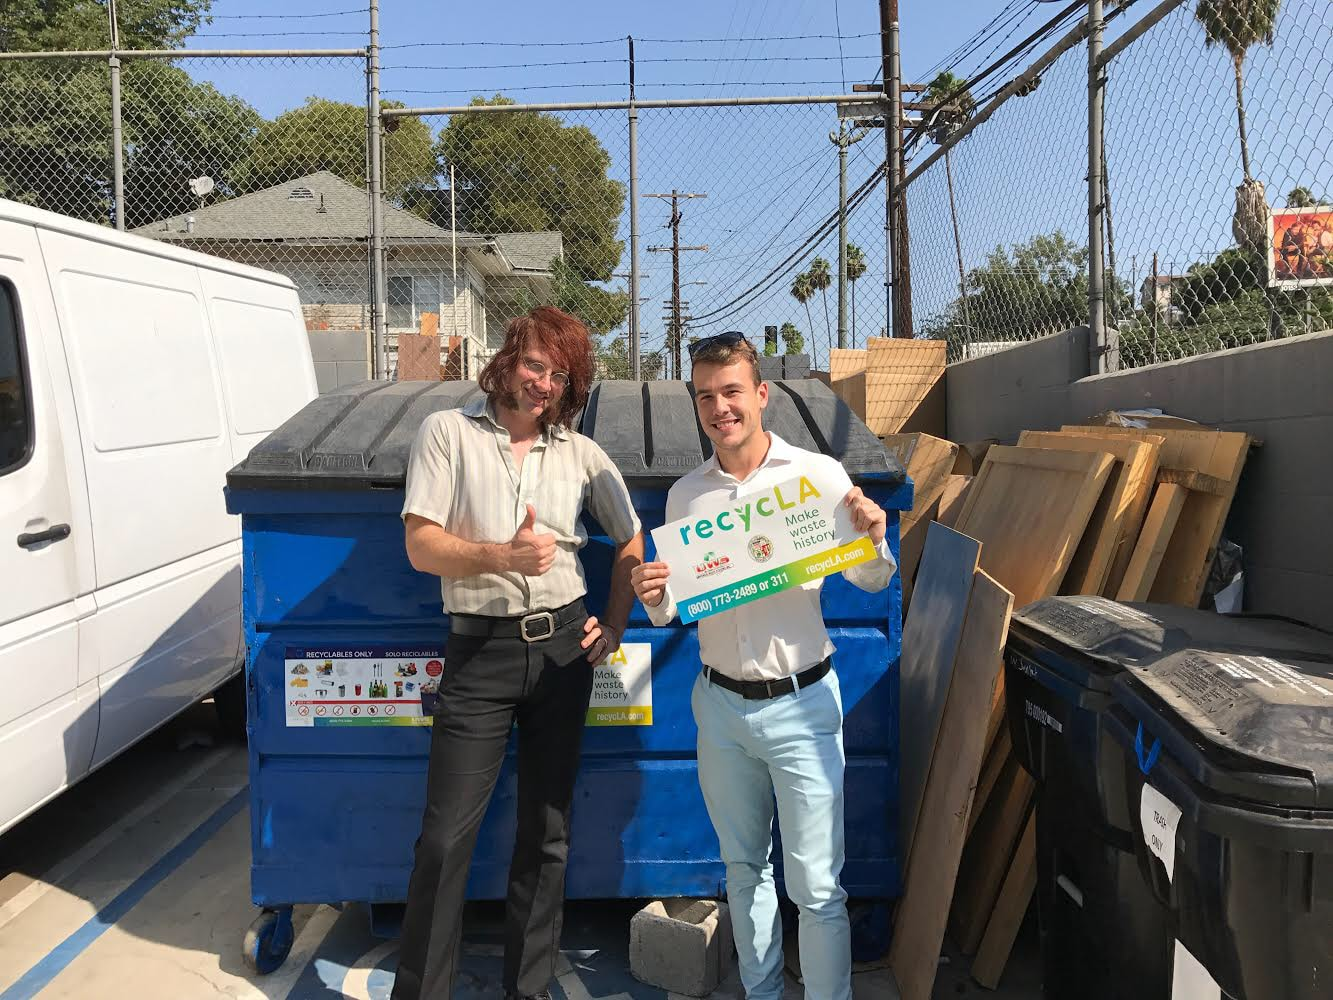 ZWT helped Vintage King Audio set up its recycling program to recycle over 90% of its waste